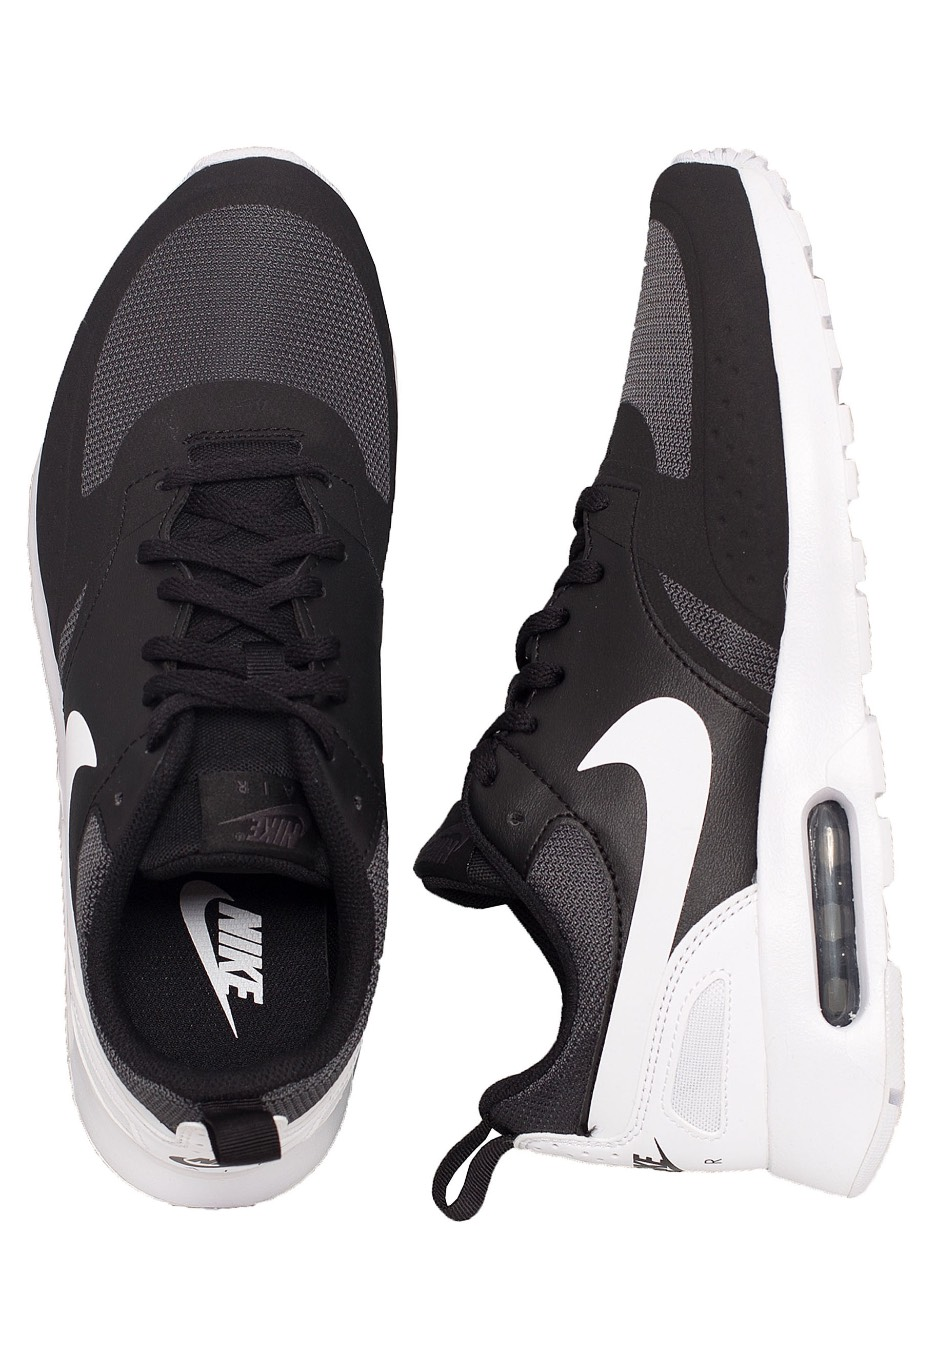 Nike Air Max Vision BlackWhiteAnthracite Shoes